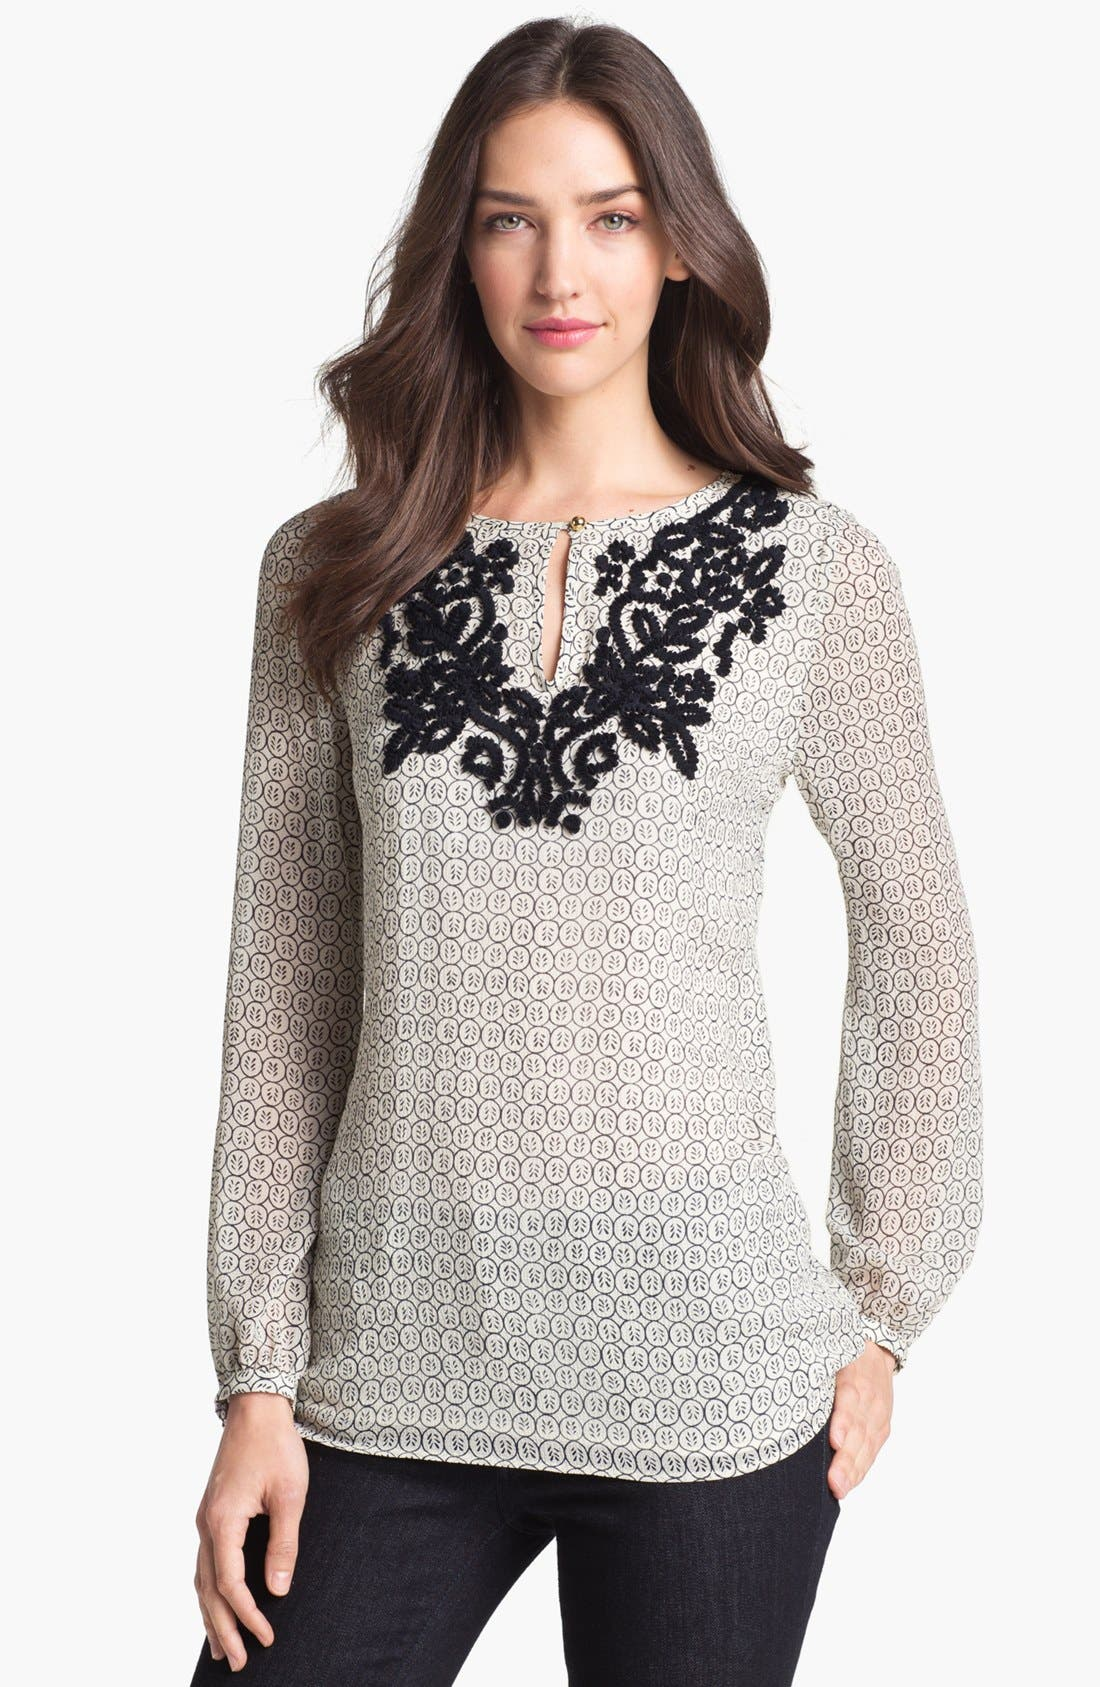 Main Image - Tory Burch 'Amali' Silk Blend Top